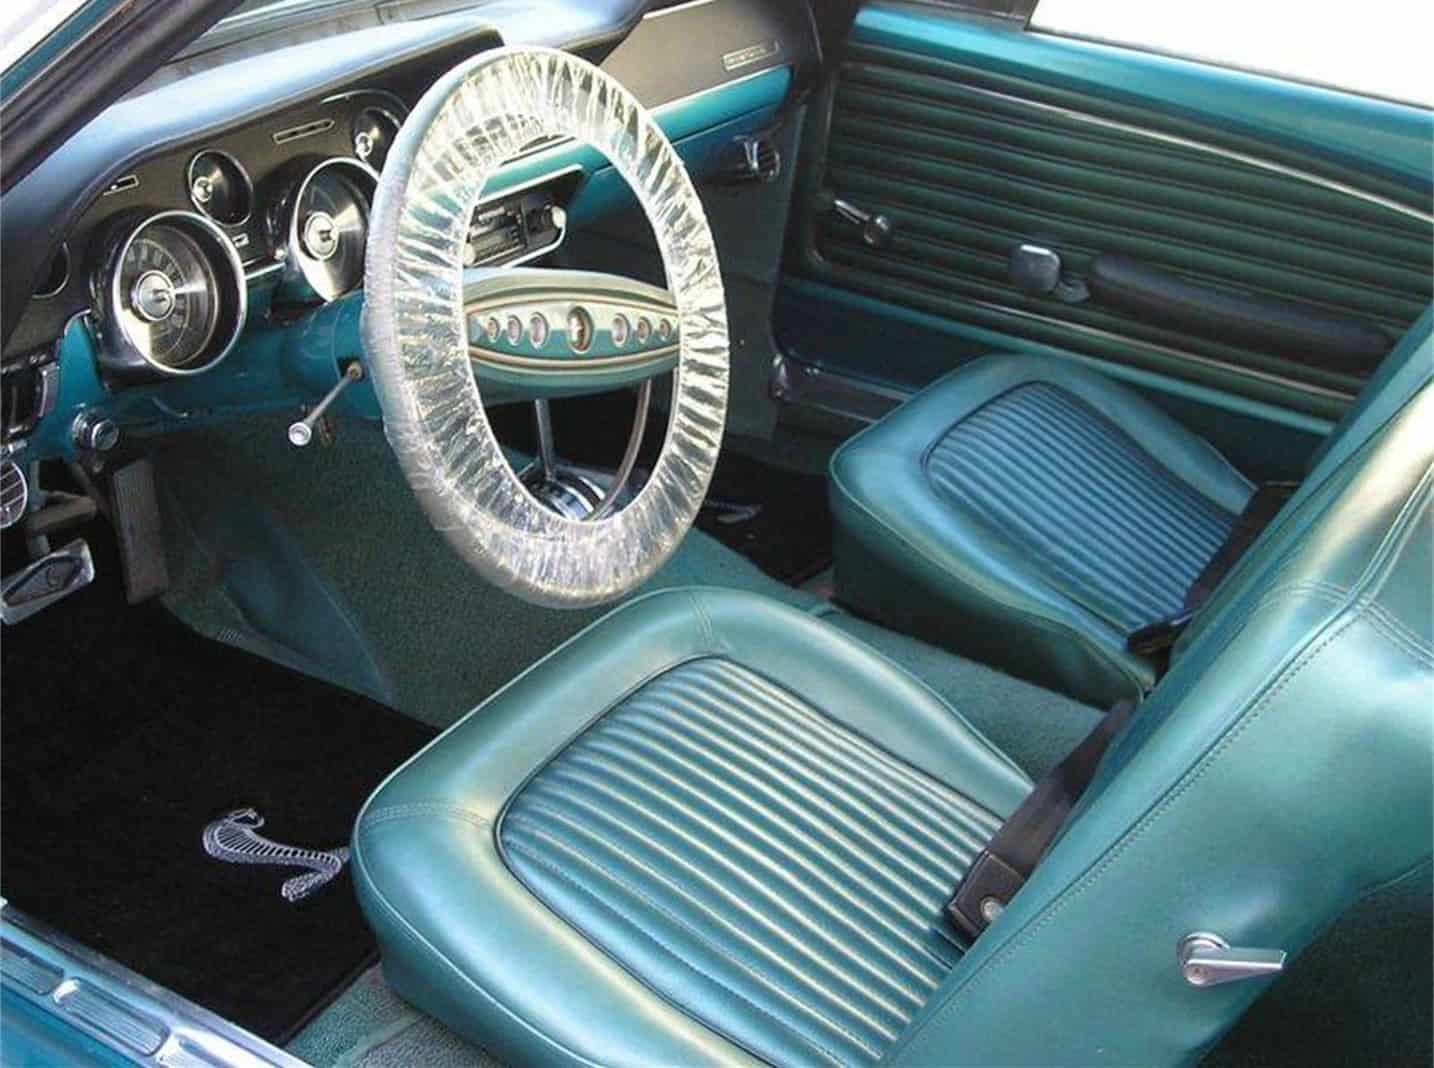 1968 Ford Mustang Sprint, Sprint package enhanced mid-'60s Mustangs, ClassicCars.com Journal